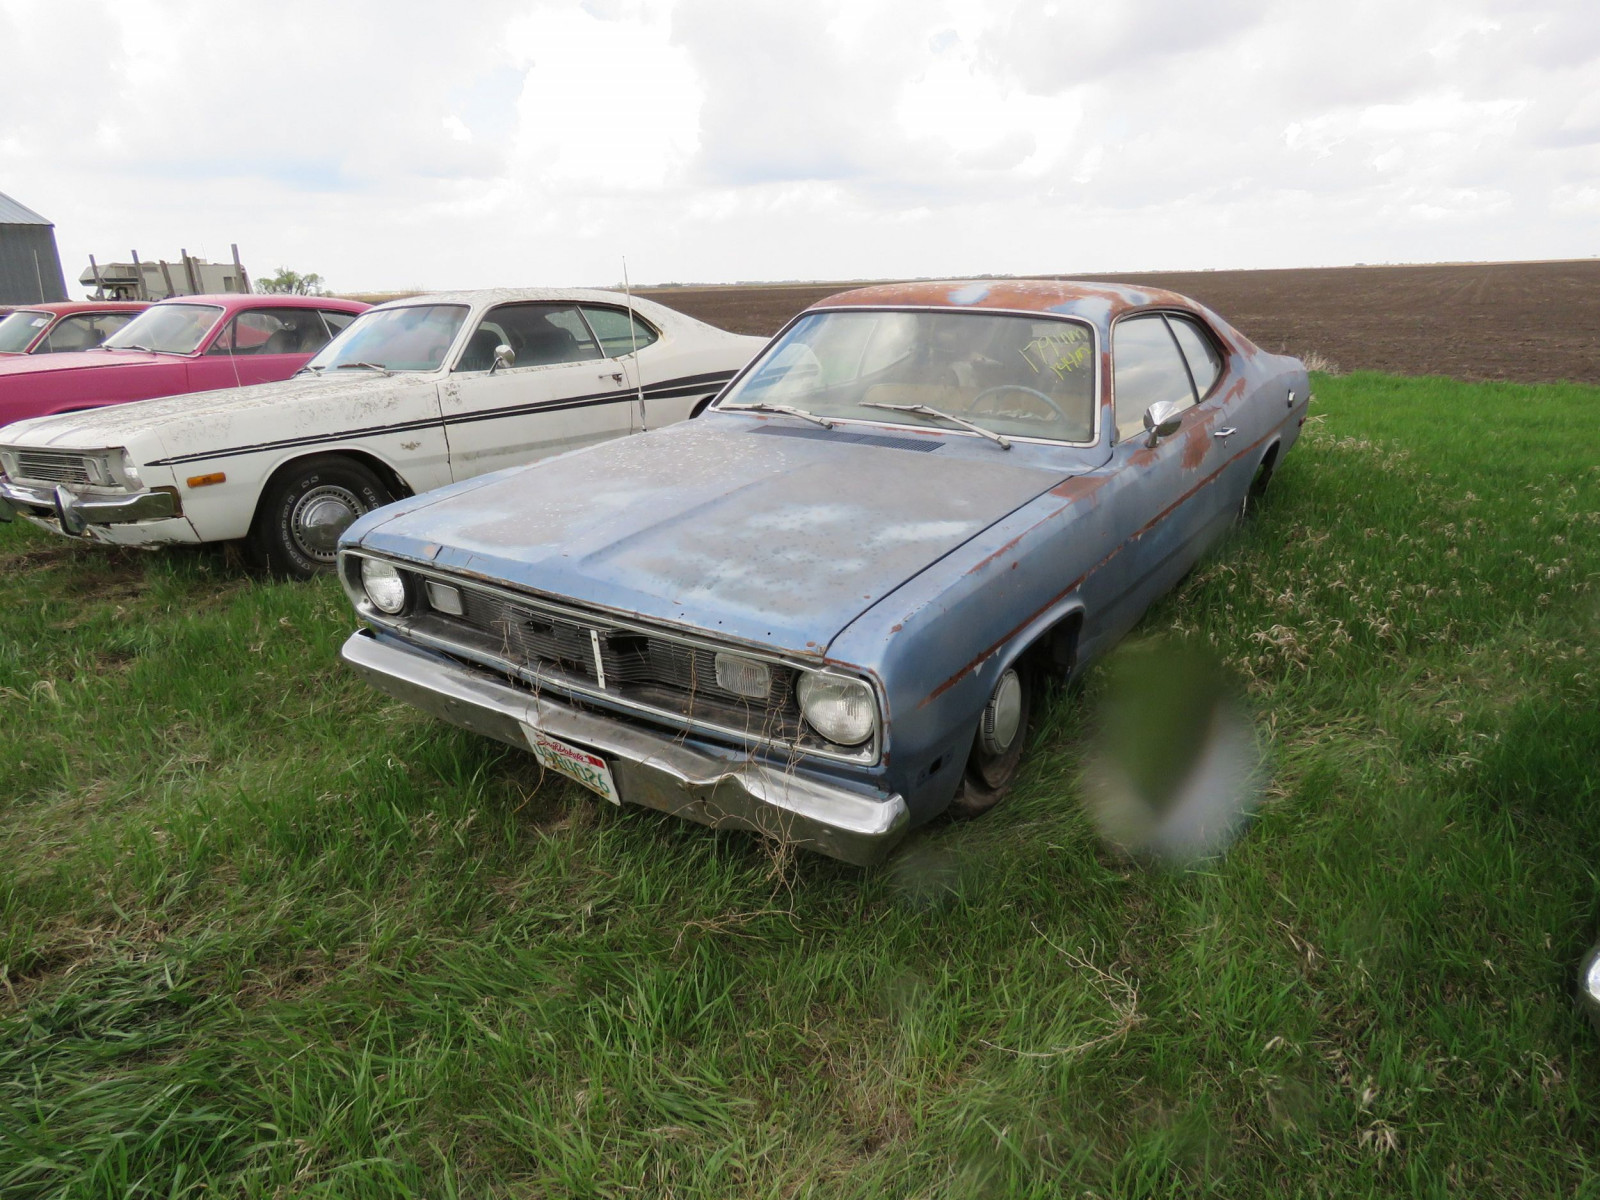 1972 Plymouth Duster Coupe - Image 1